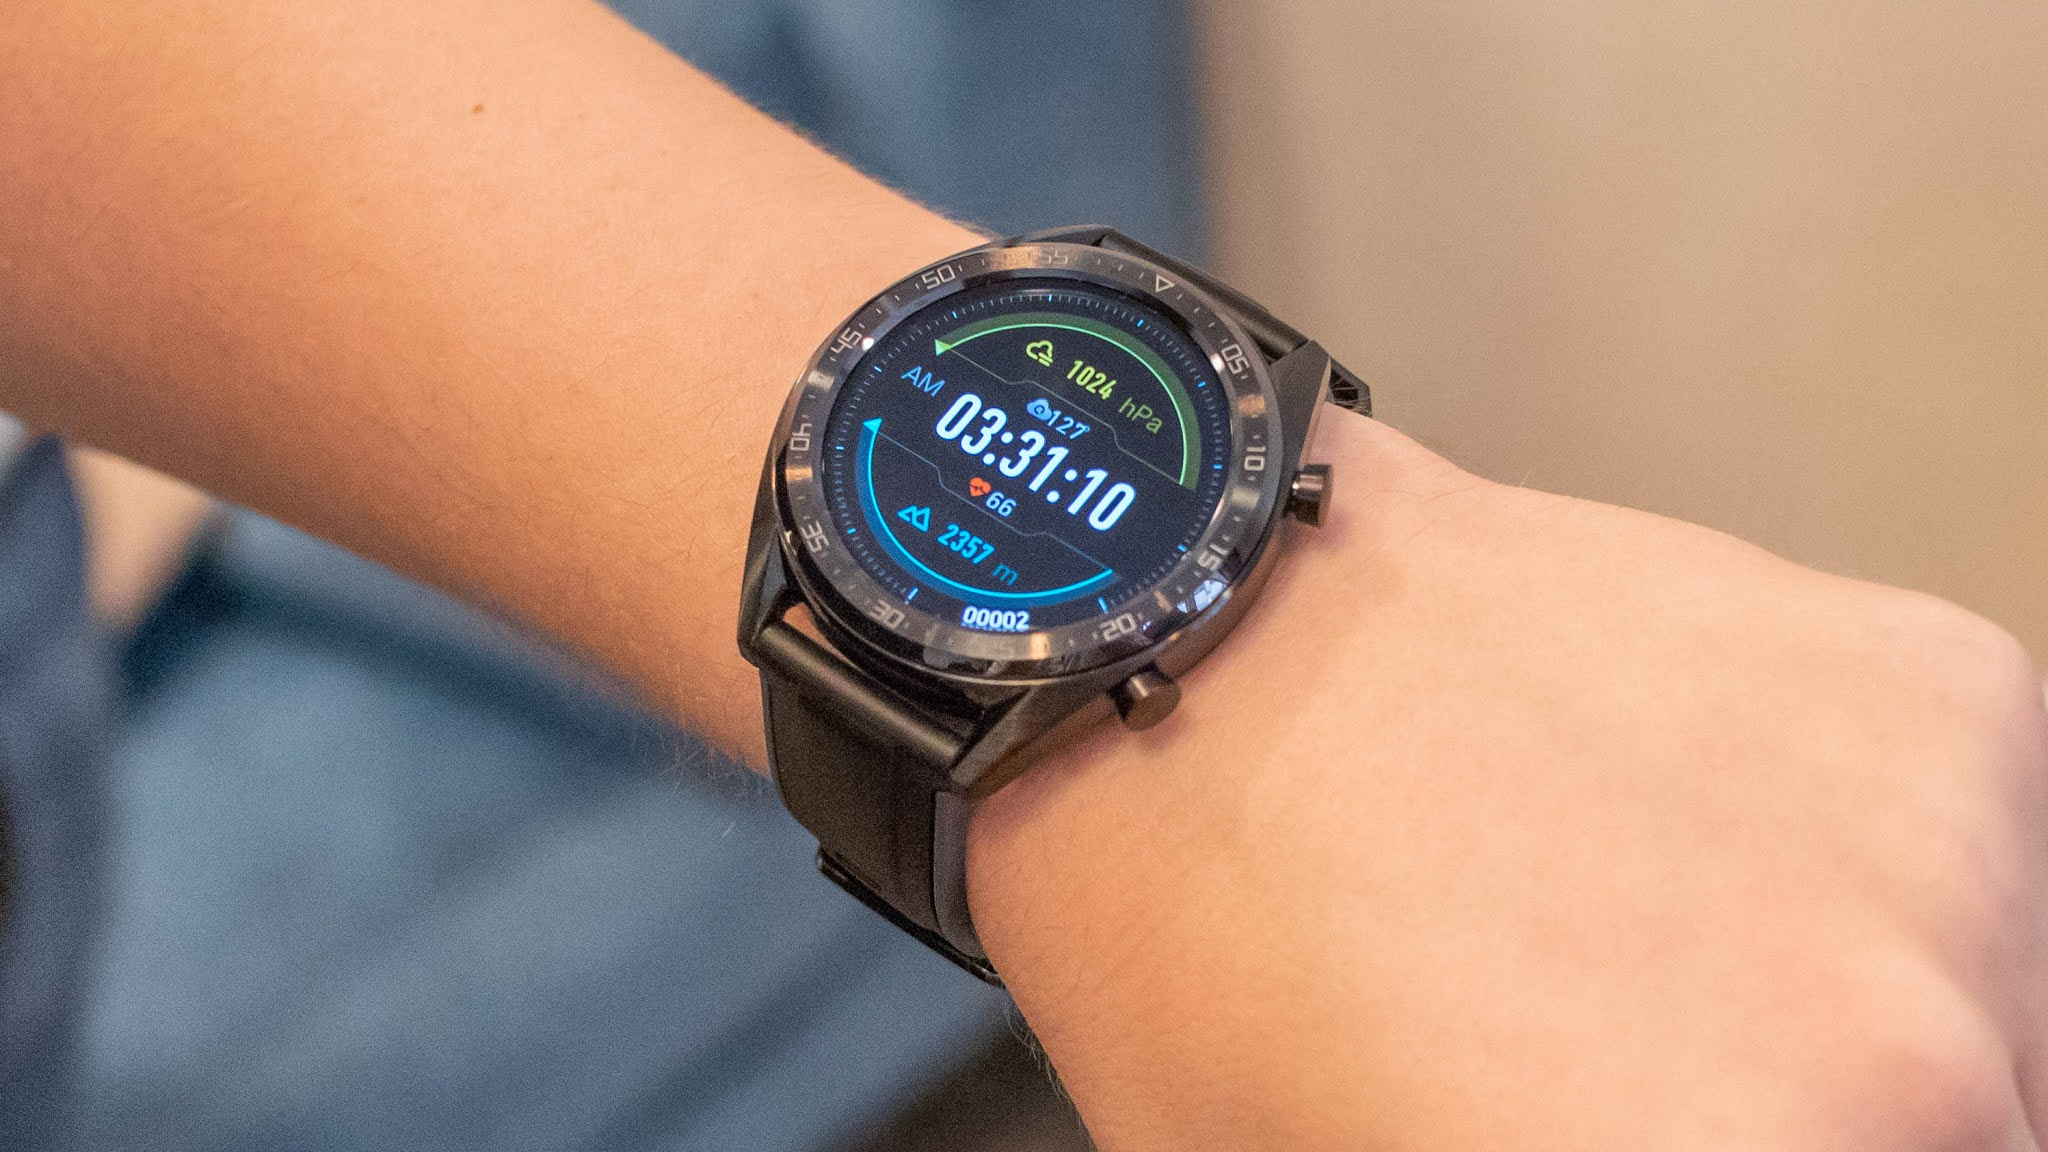 Huawei Watch 3 Said to Features HarmonyOS + eSIM With Complete New Form